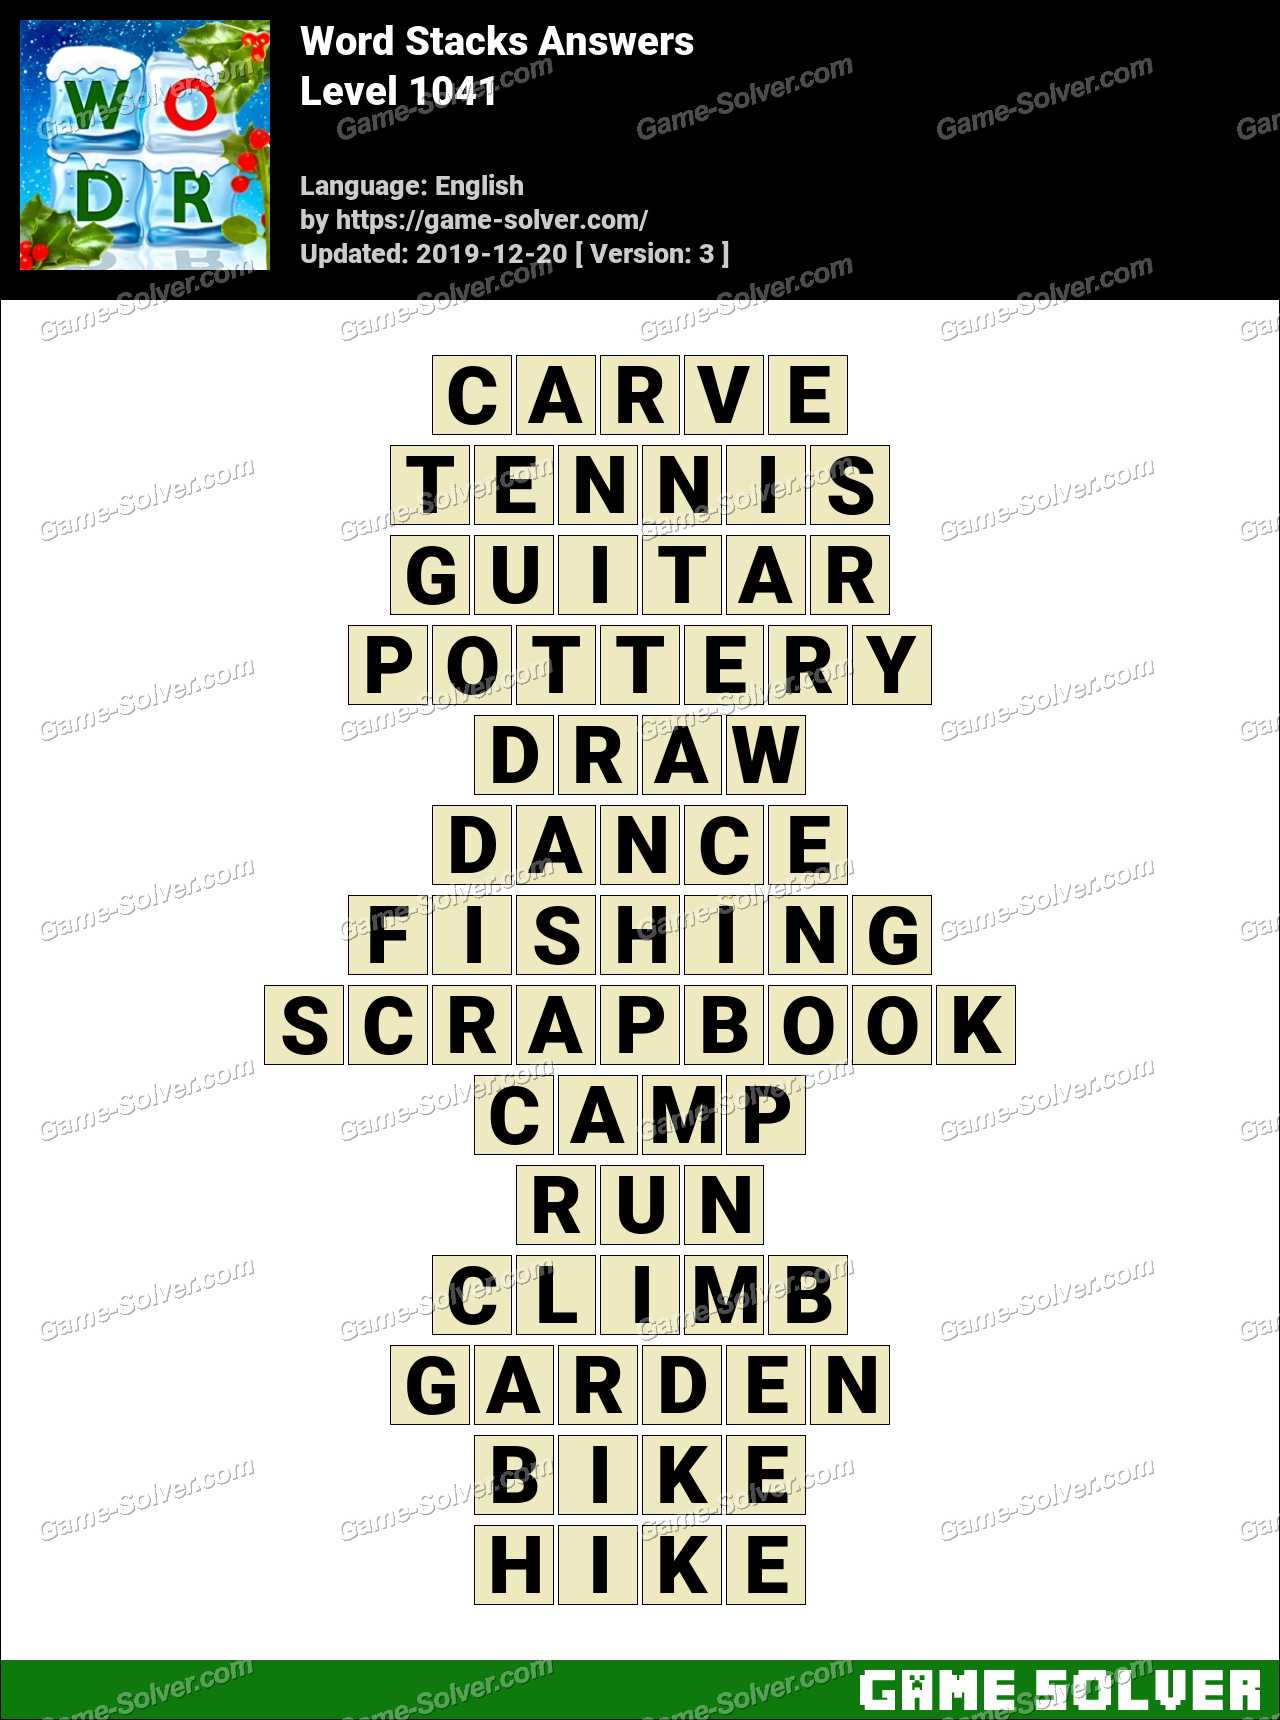 Word Stacks Level 1041 Answers